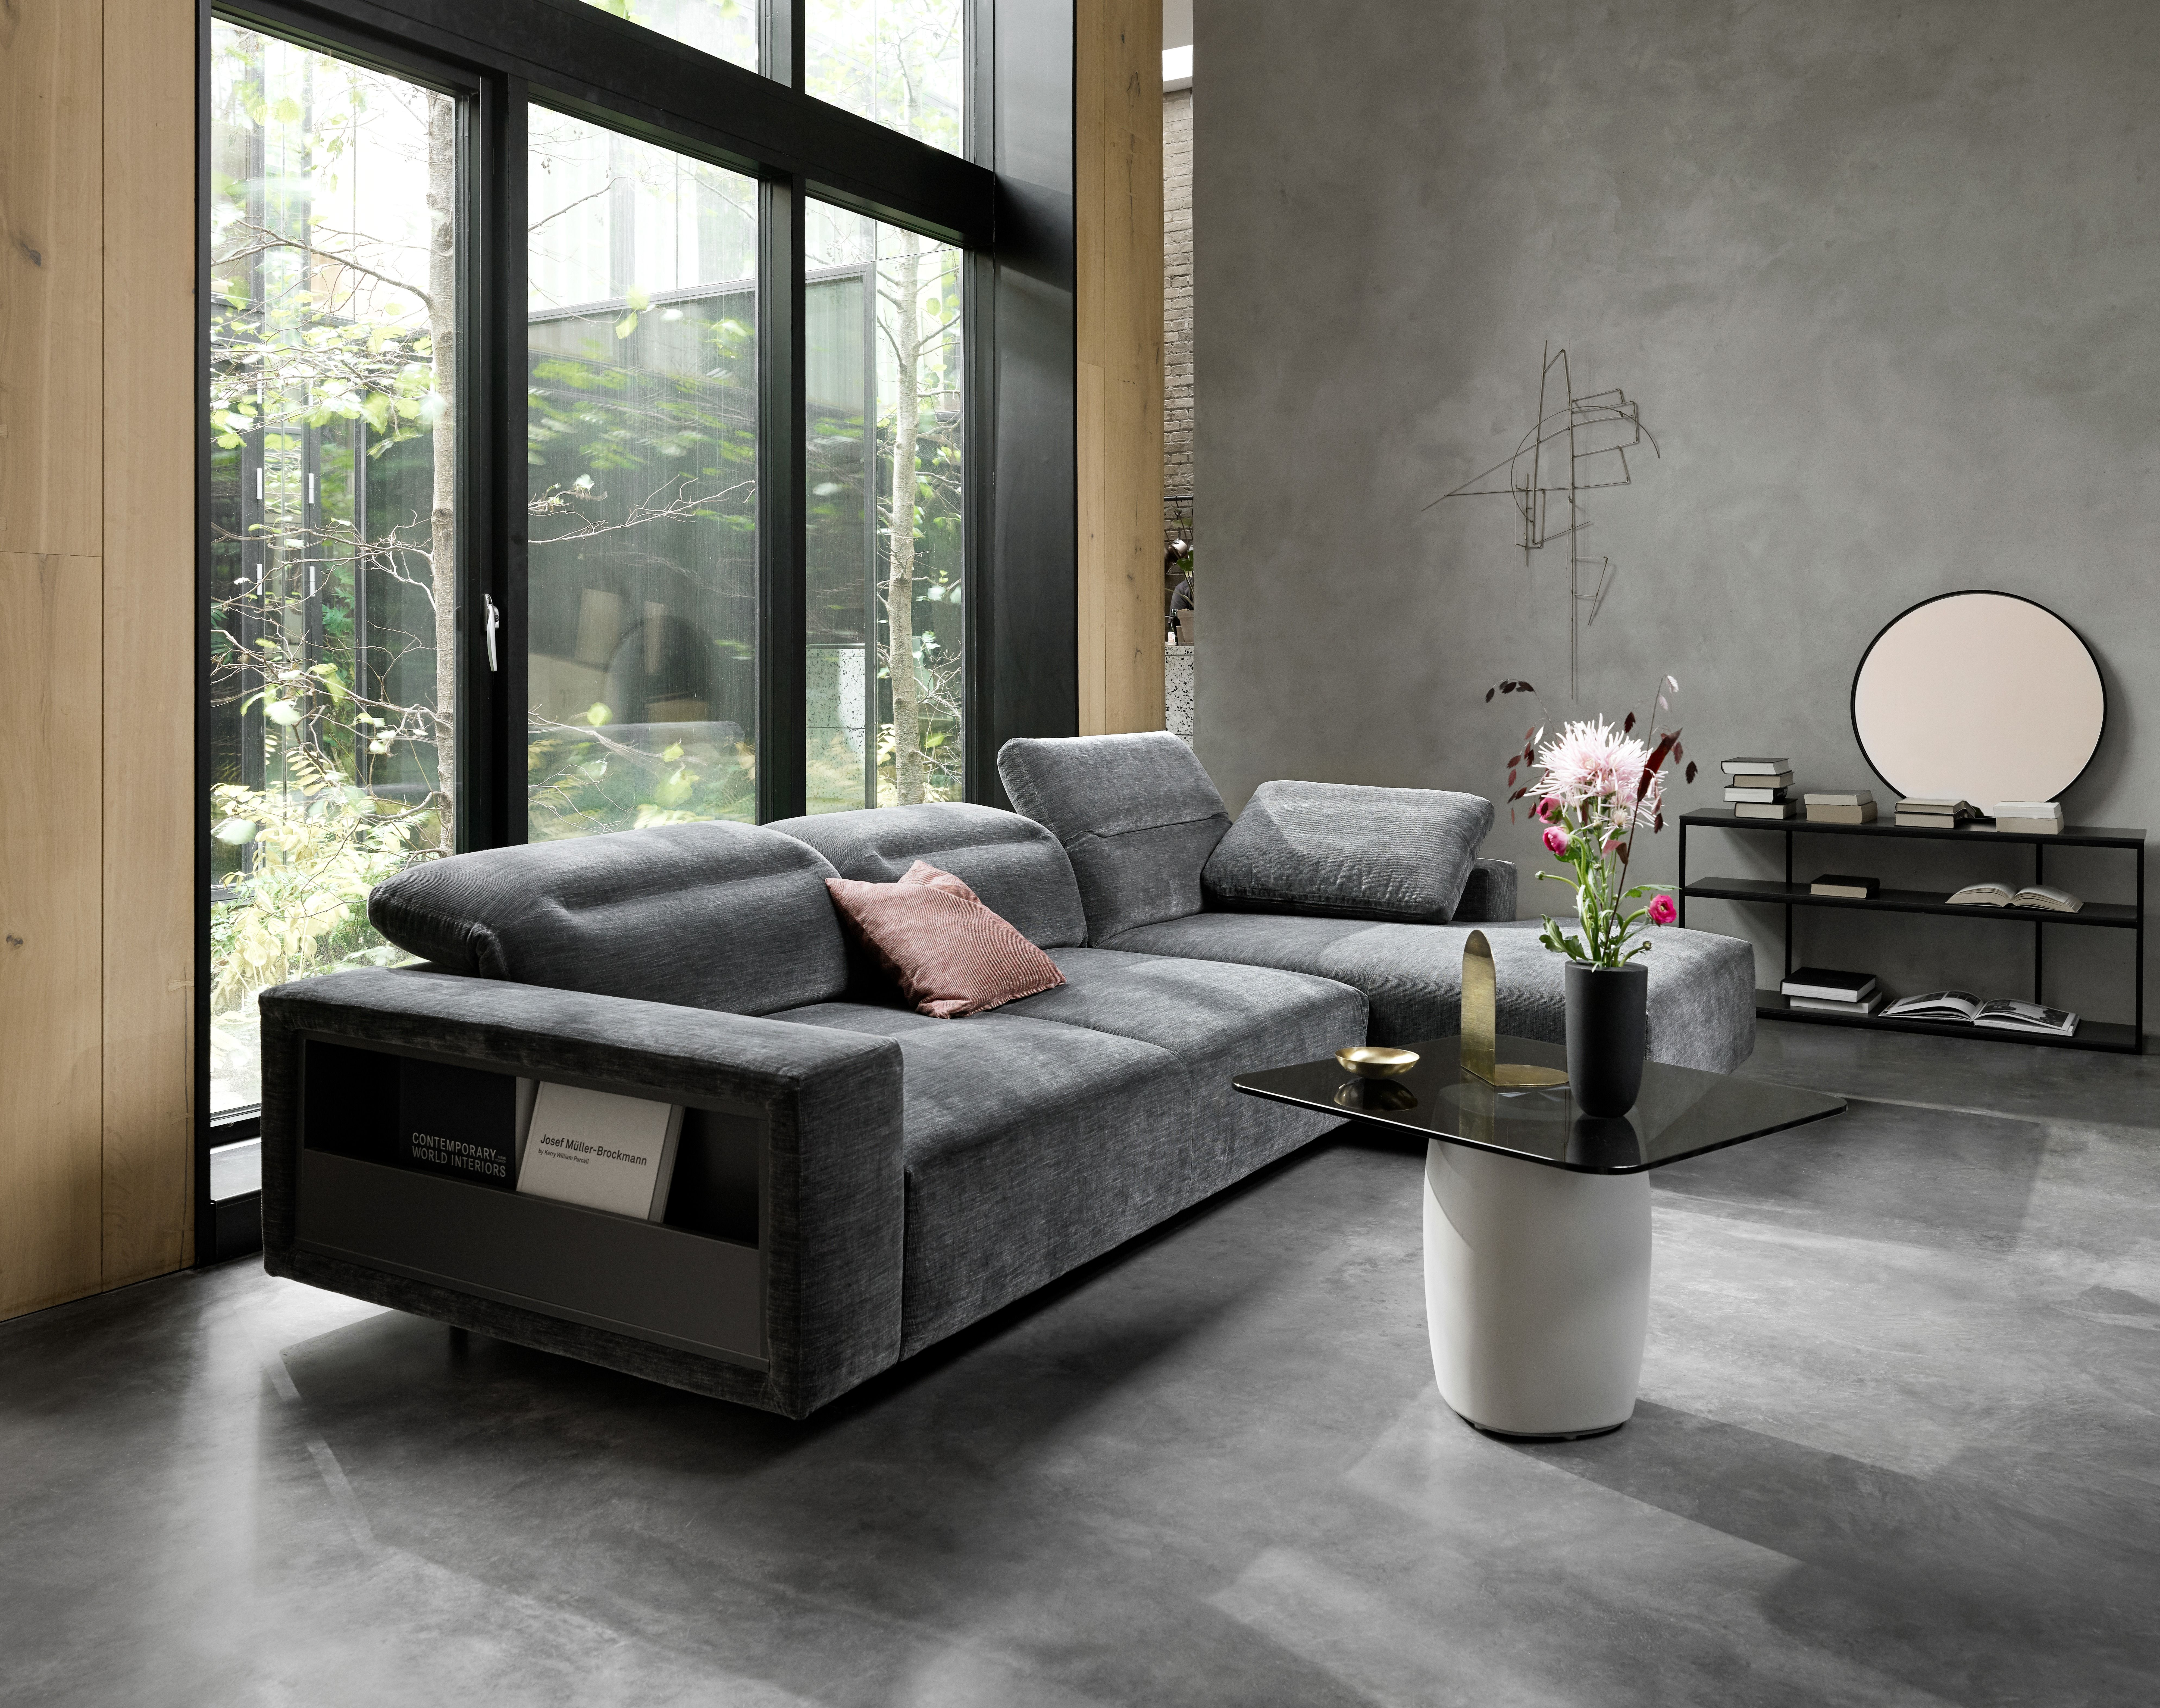 Balancing Light And Dark Perfectly Corner Sofa Design Sofa Design Living Room Designs